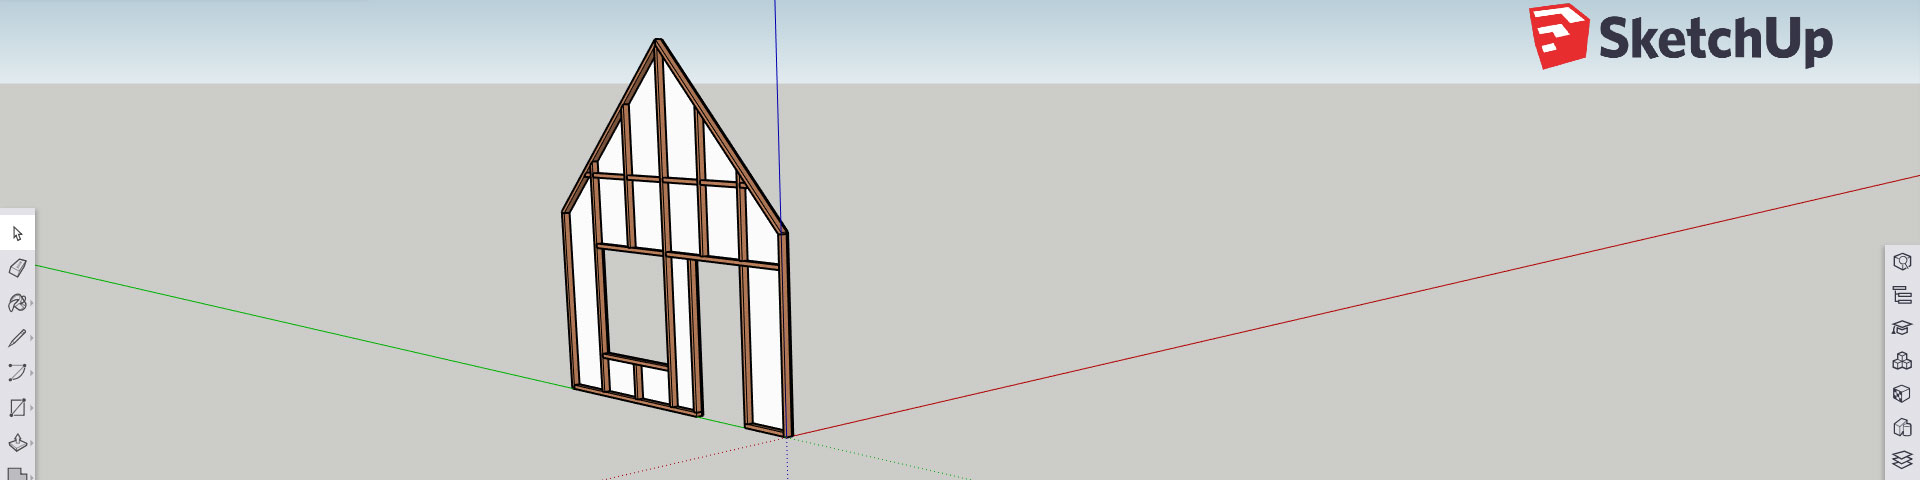 event-sketchup